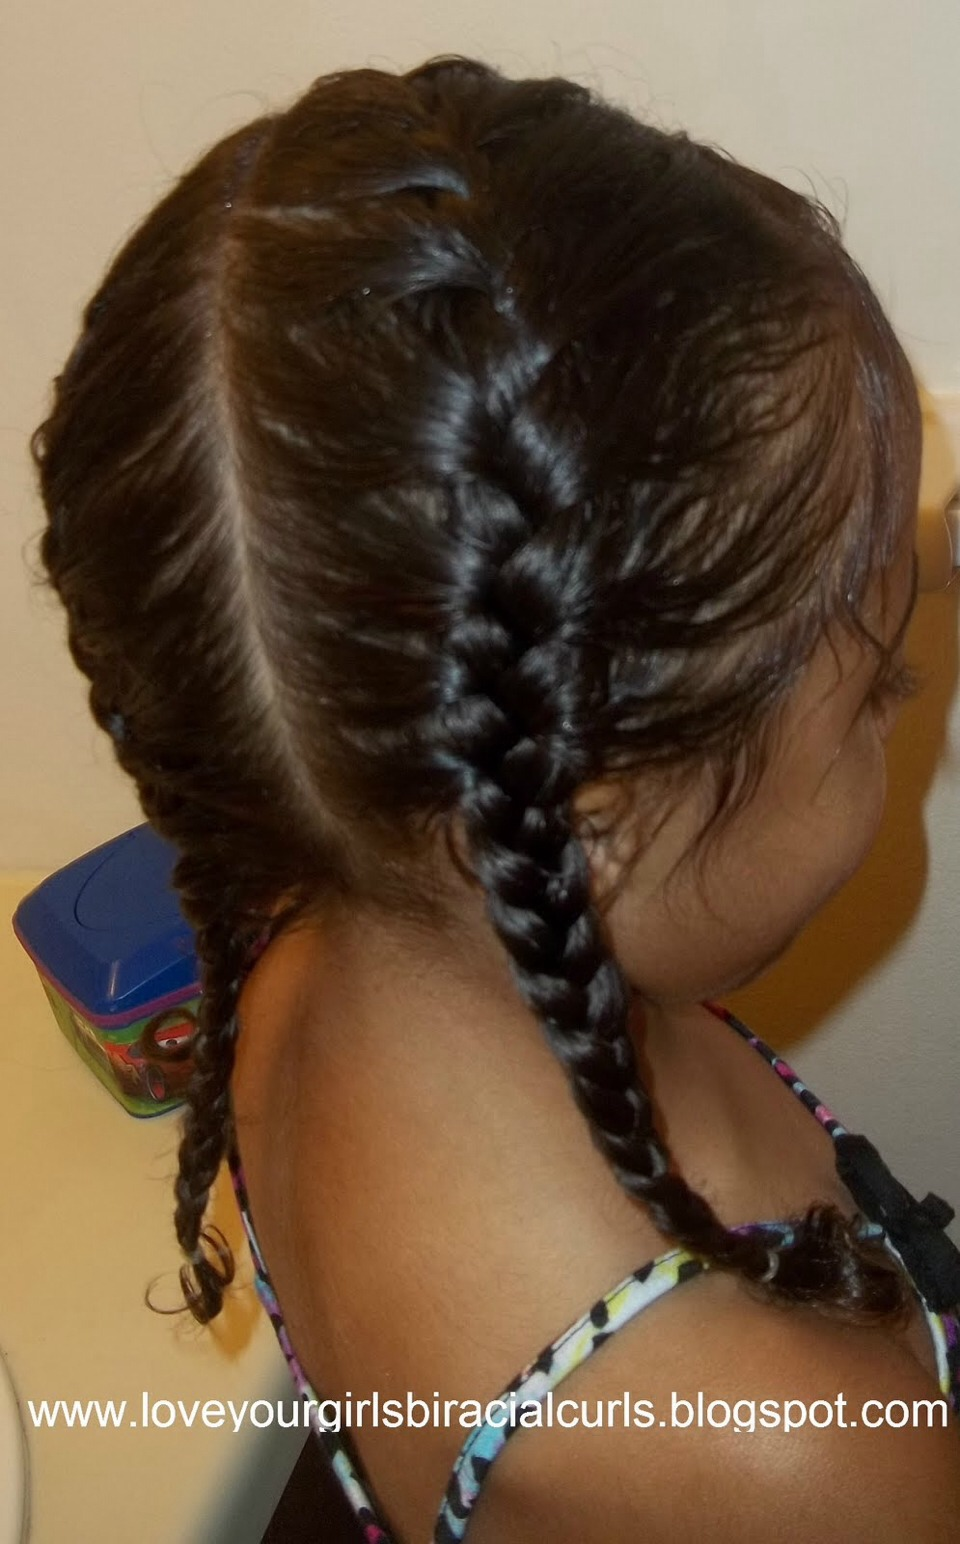 Just do 4 french braids two on either side of your head & two in the back.  When hair is damp. Leave in over night.